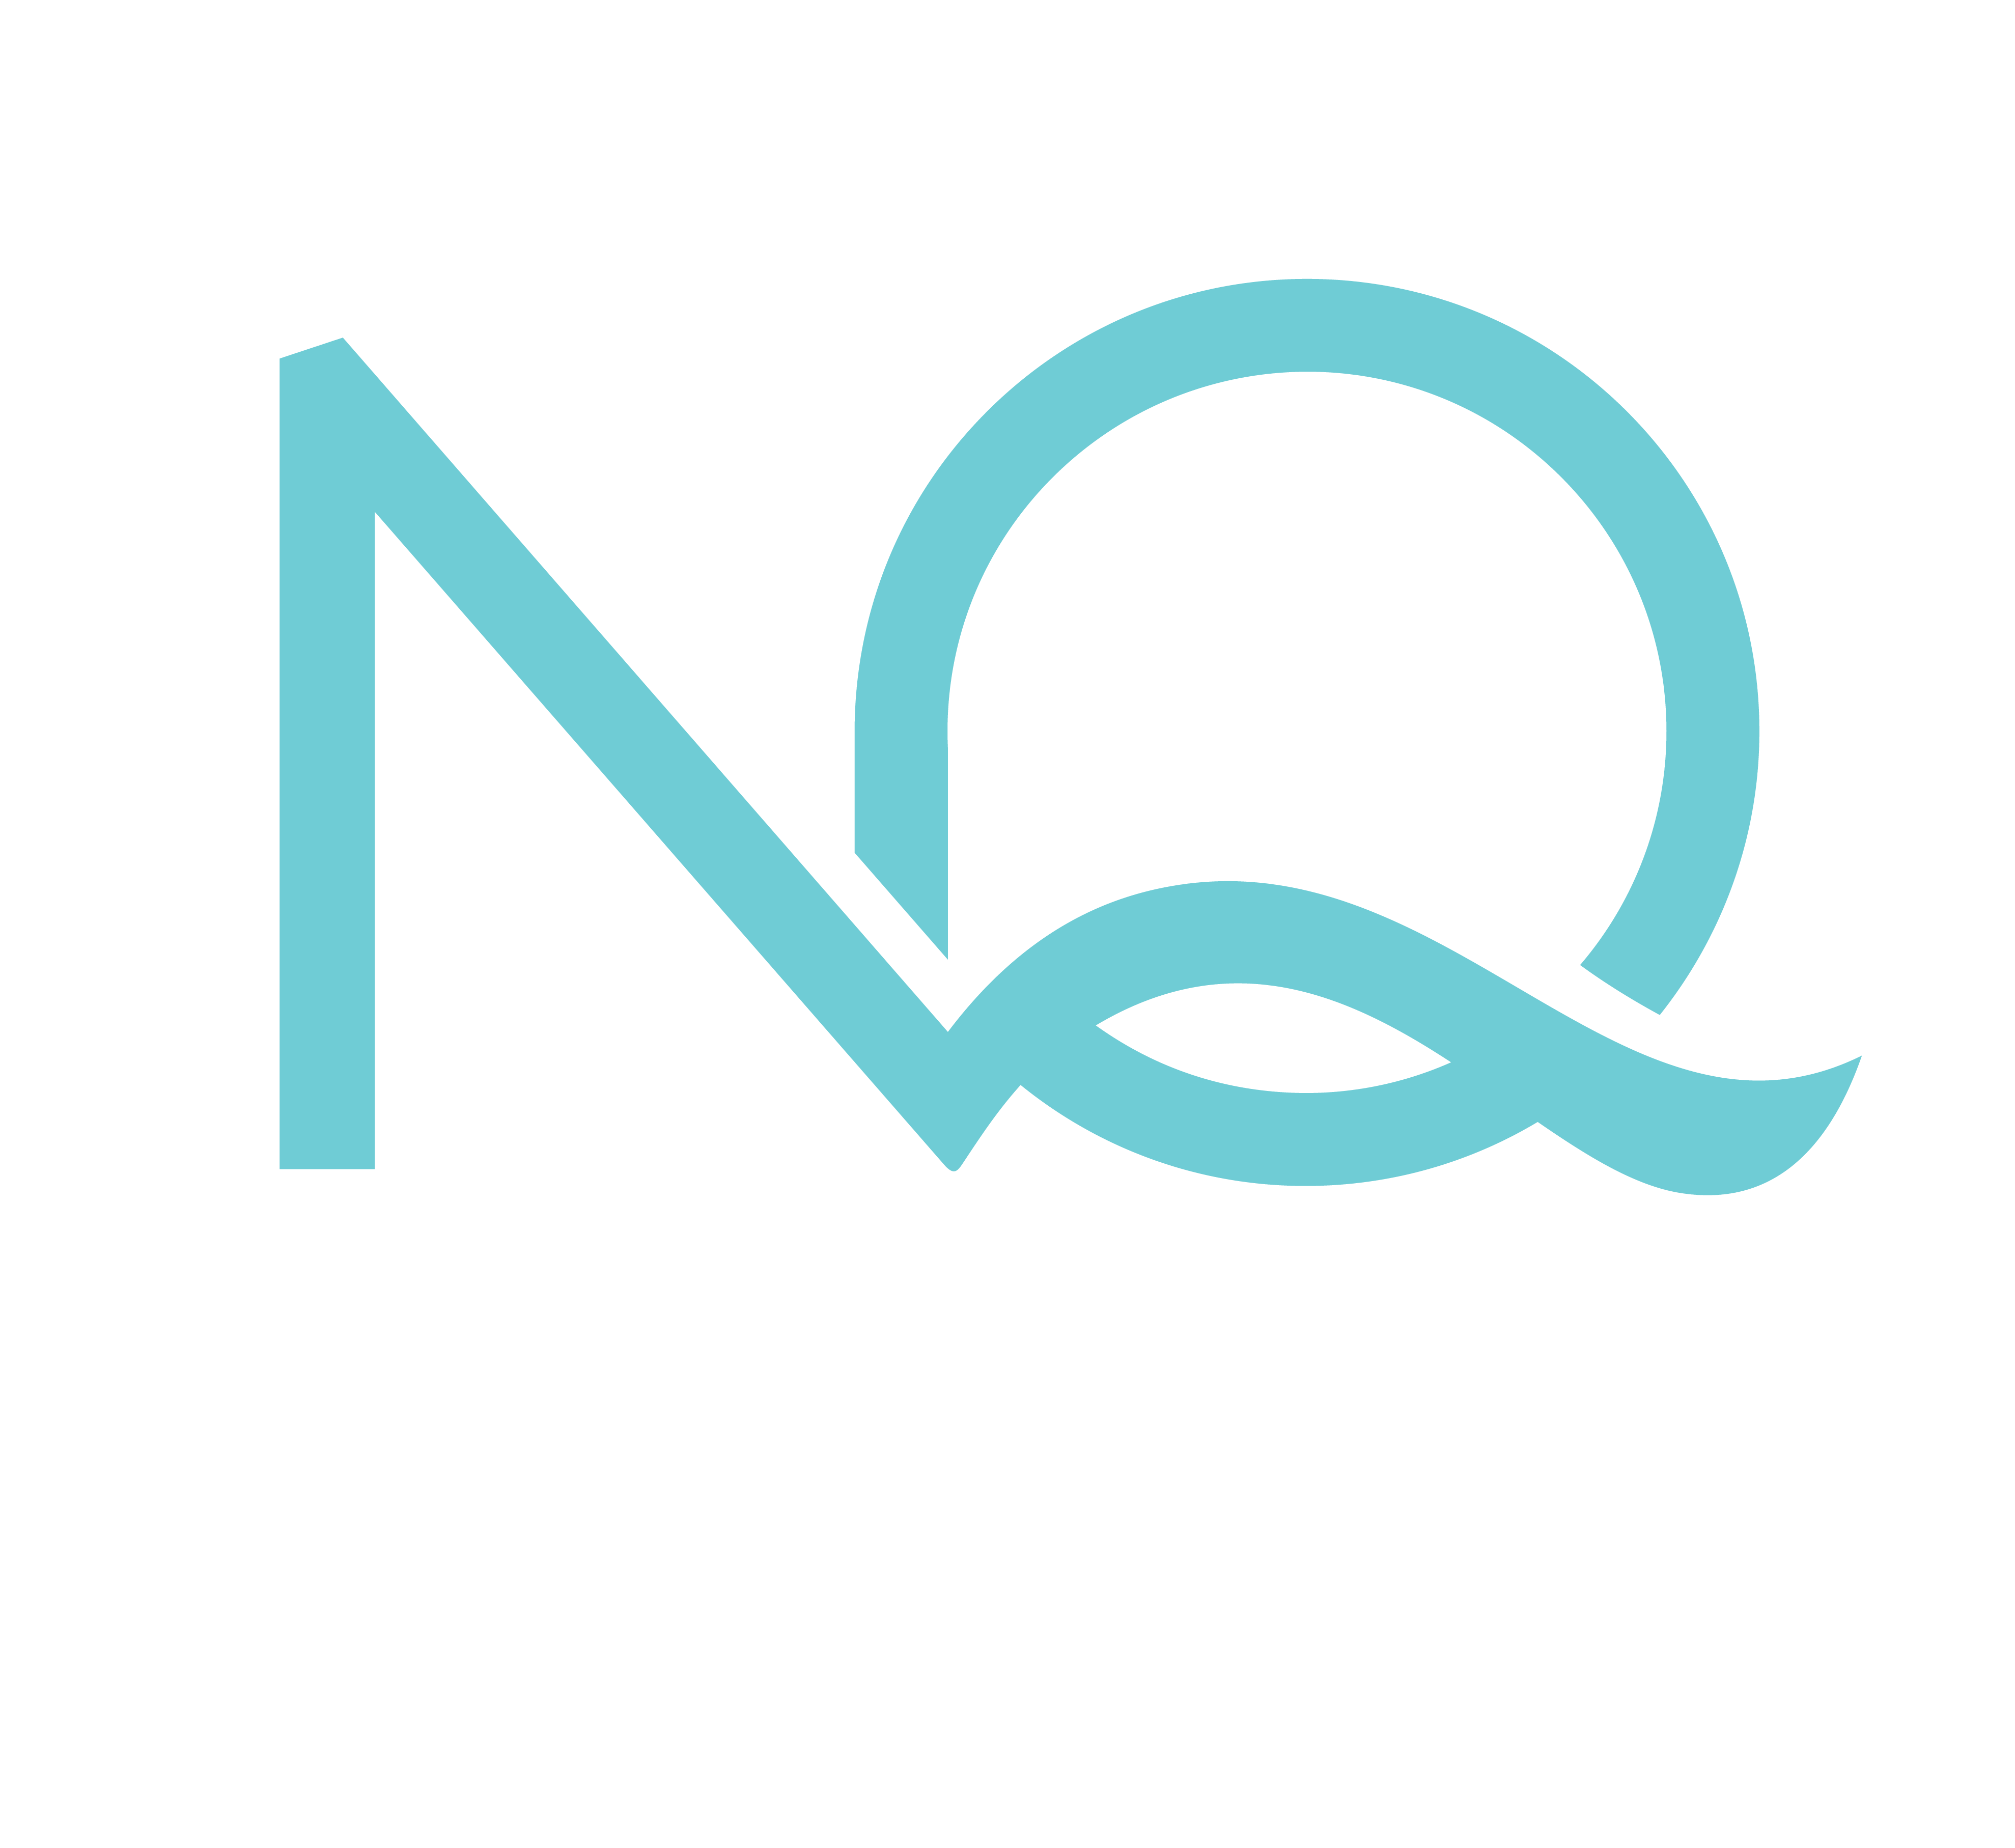 Logo for a building company specialising in outdoor decking and outdoor spaces